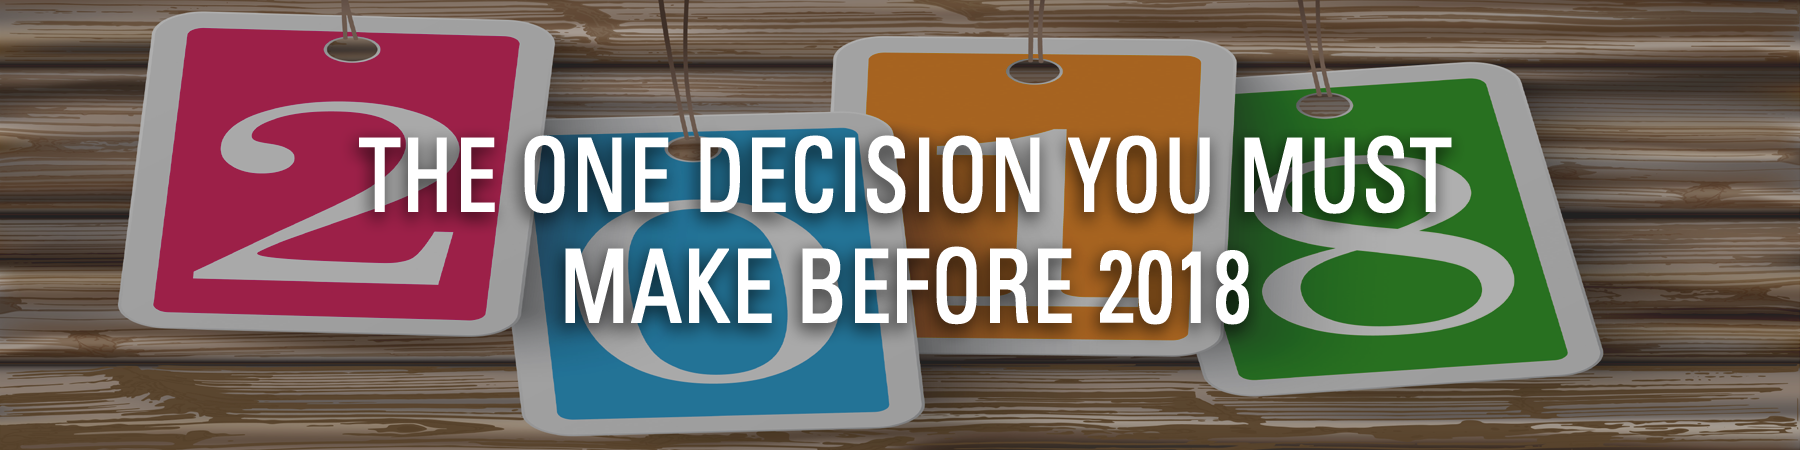 THE ONE DECISION YOU MUST MAKE BEFORE 2018